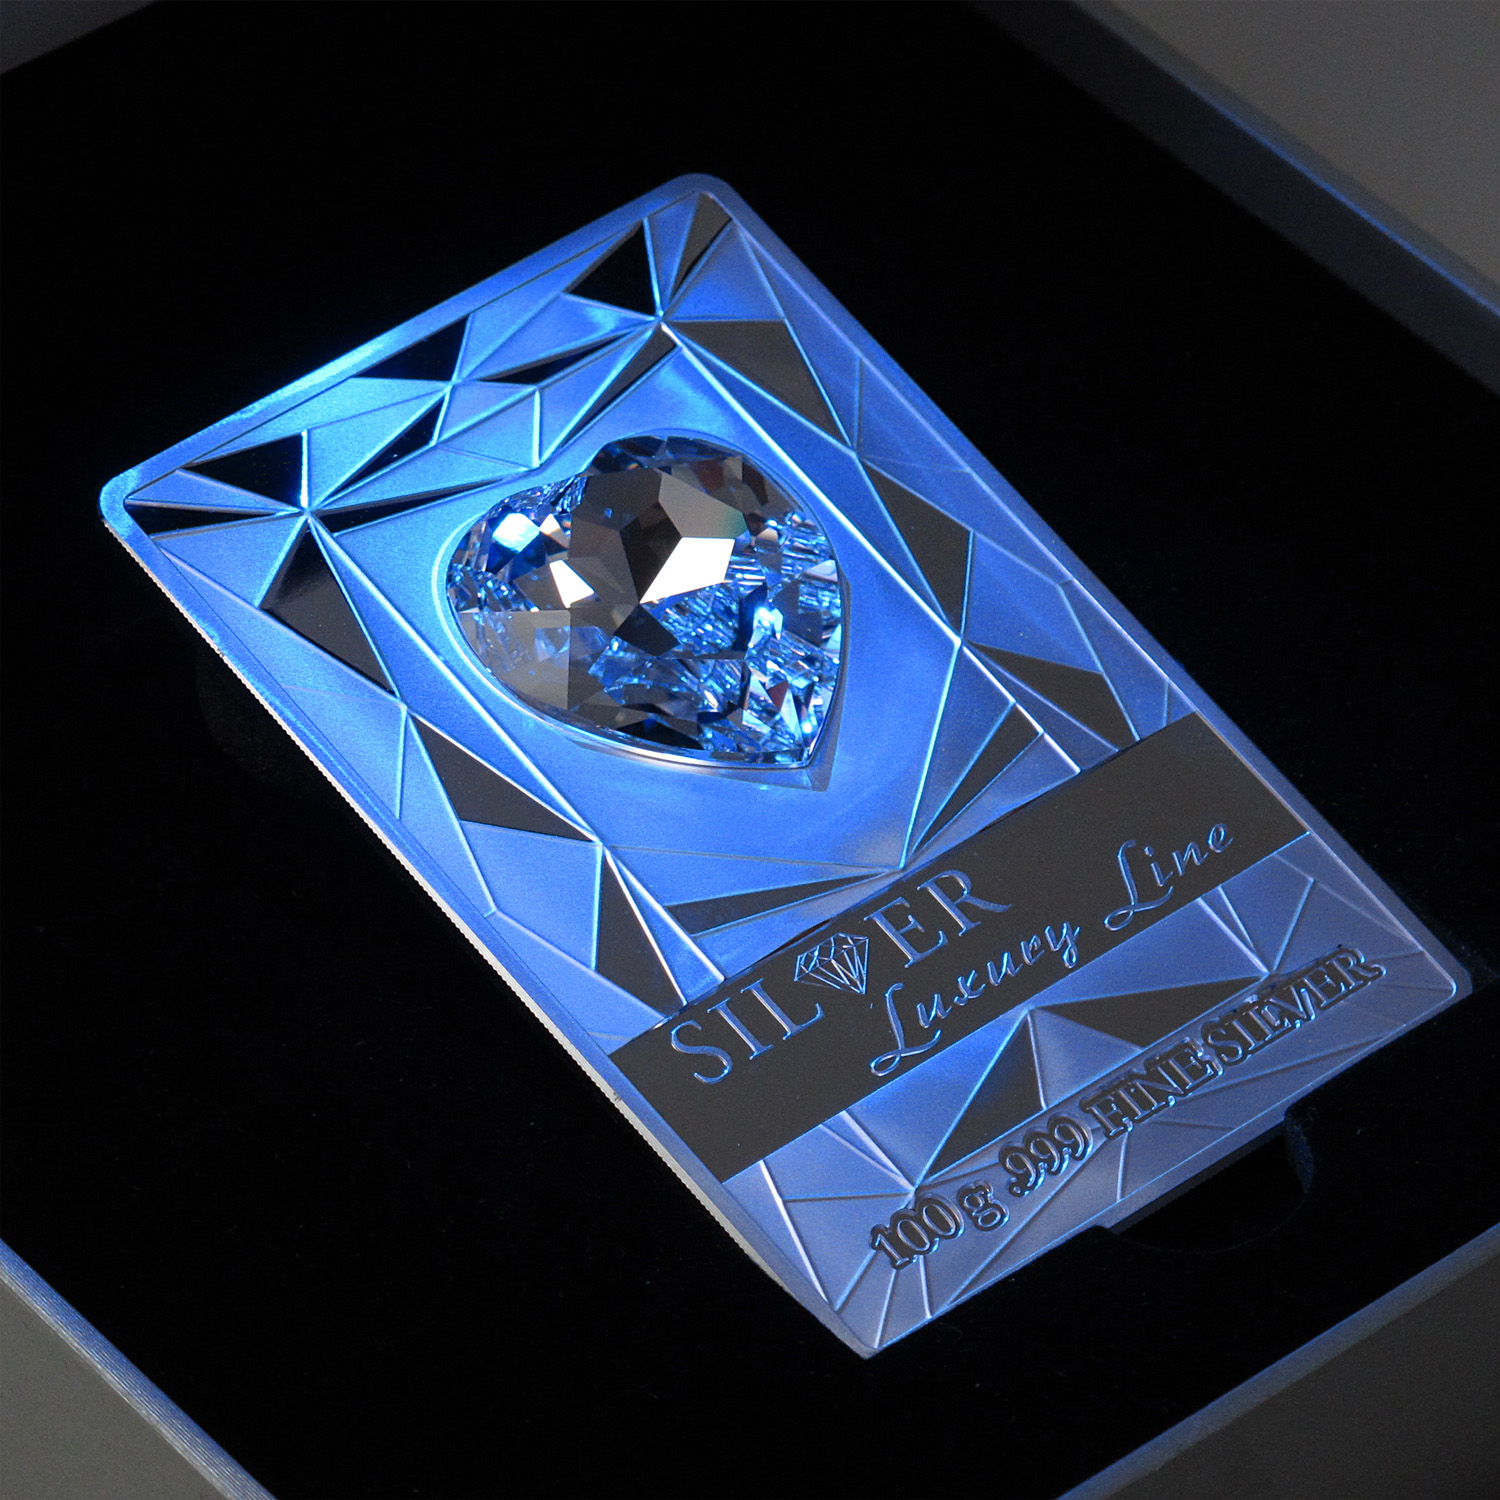 2014 Cook Islands Proof Silver $20 Luxury Line Swarovski Crystal